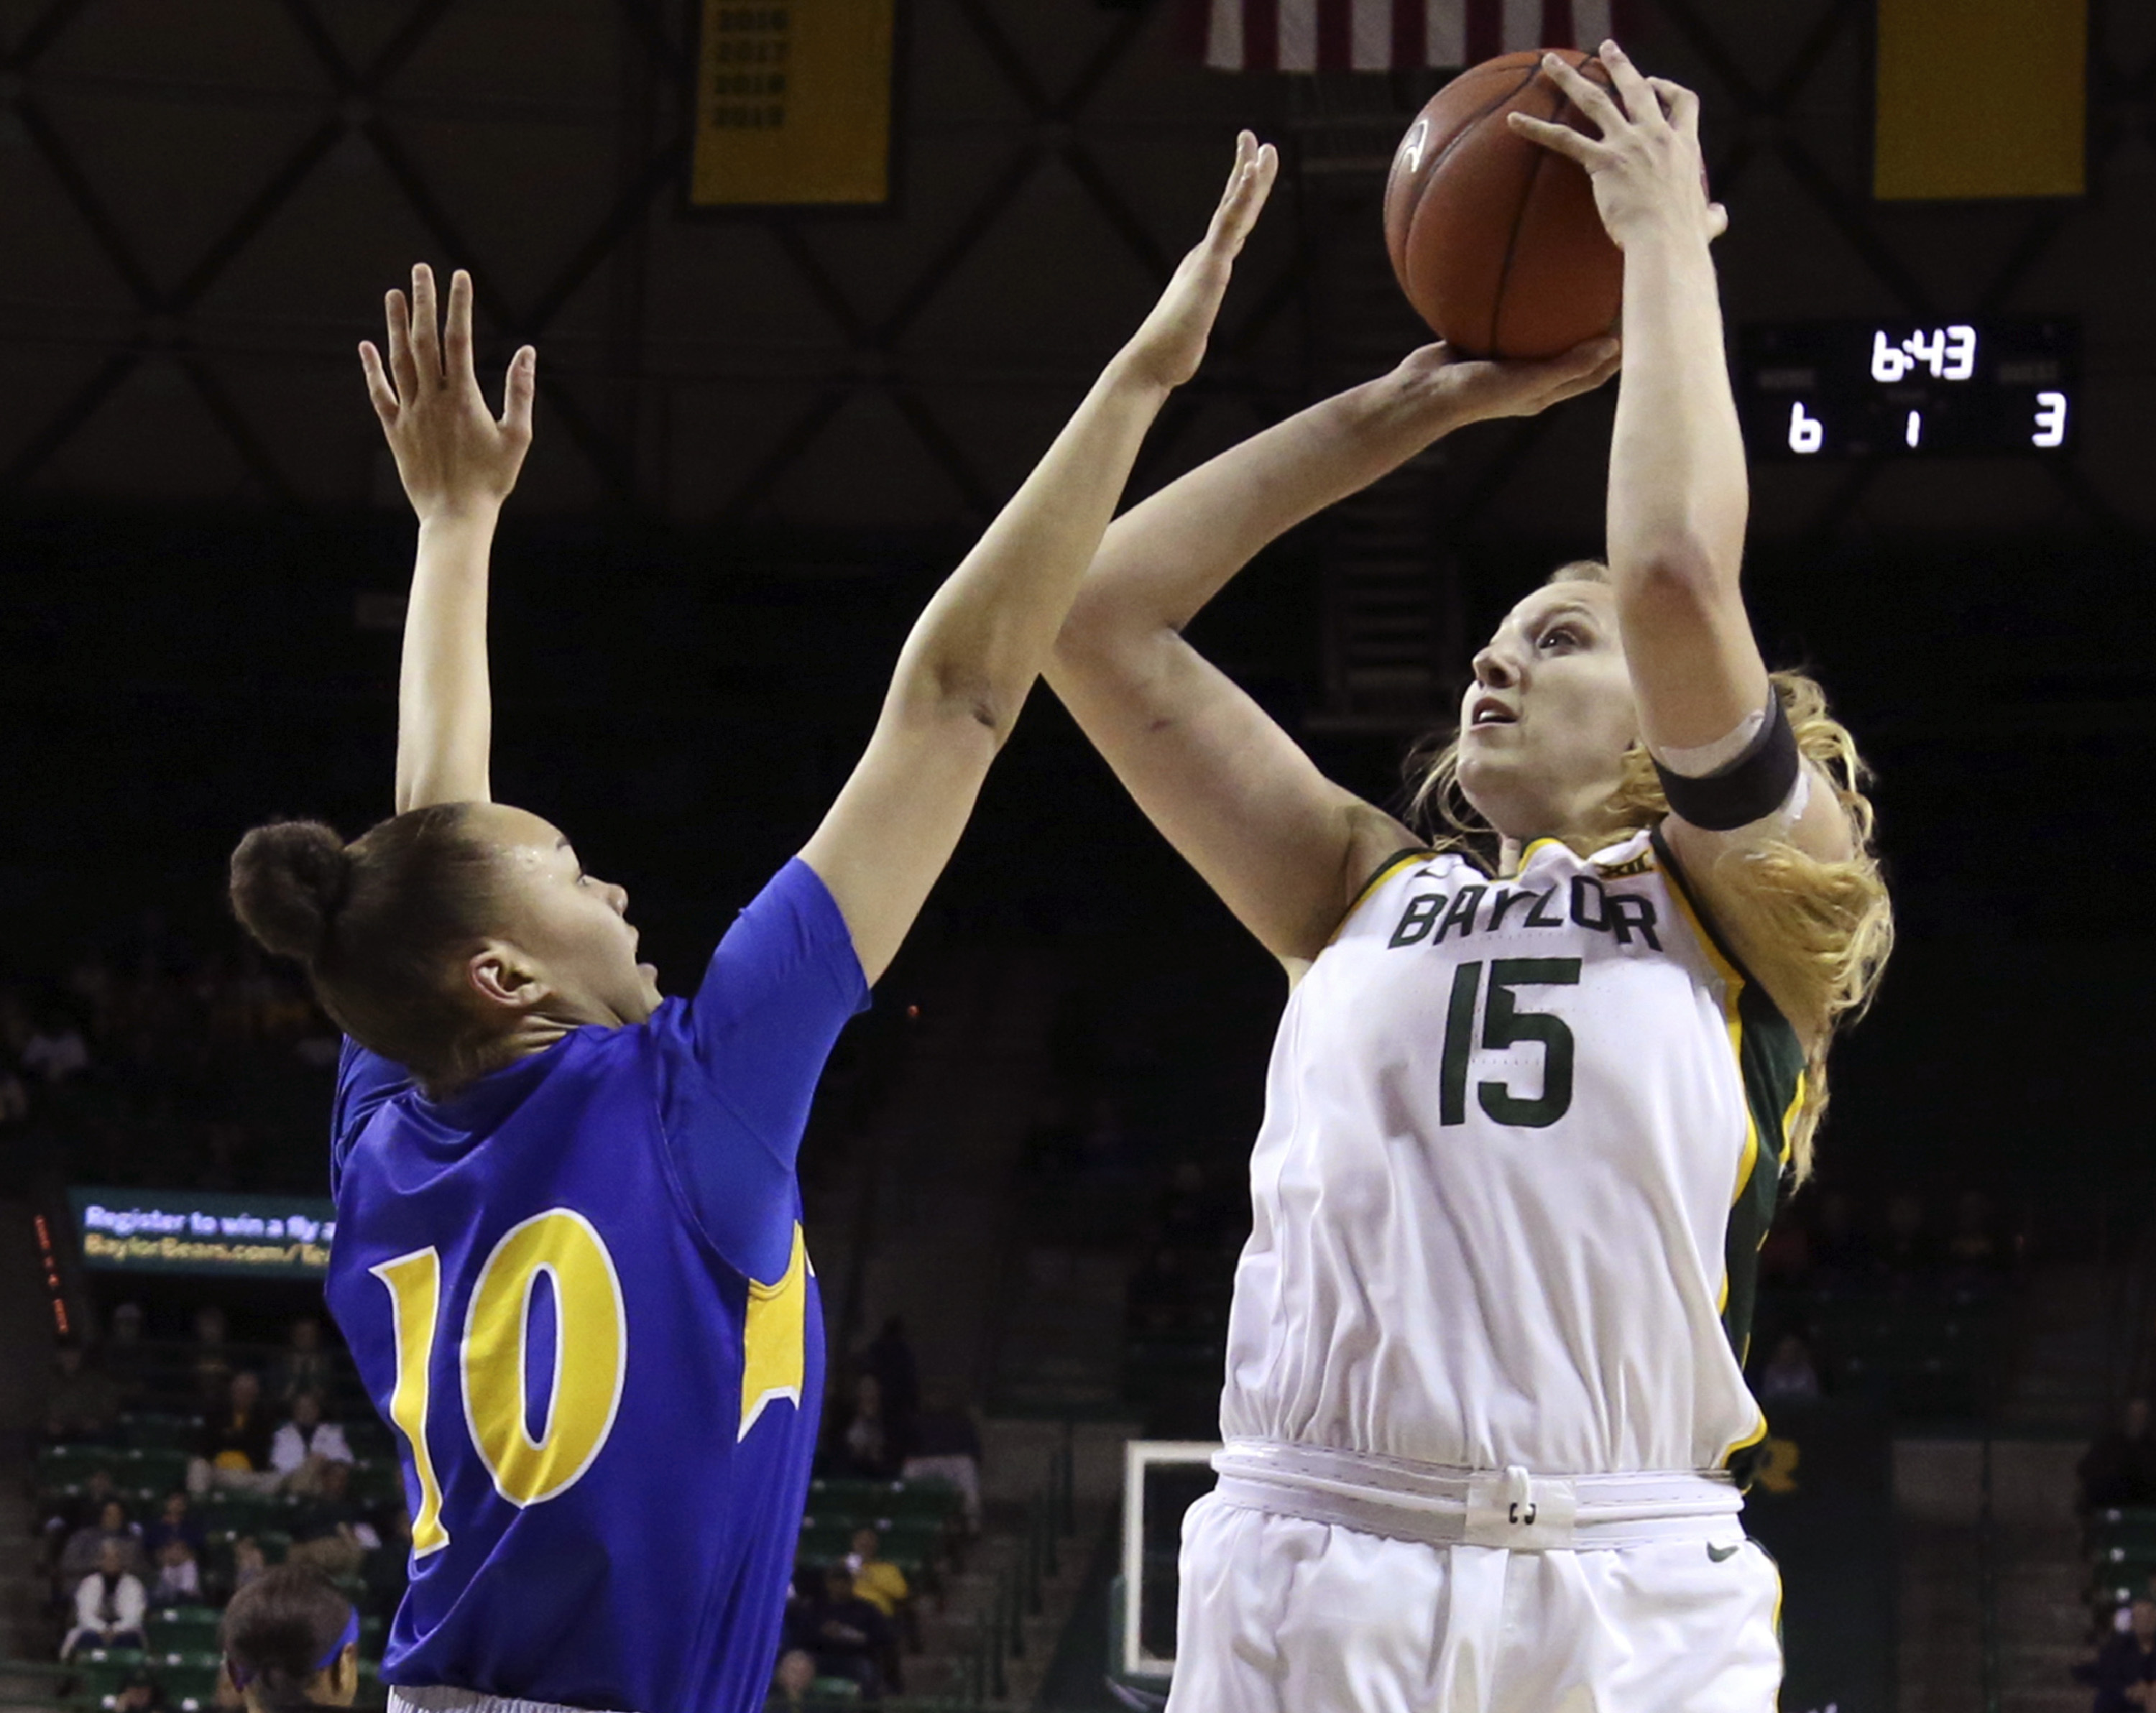 Cox back for No. 6 Baylor women in 94-47 win over Morehead